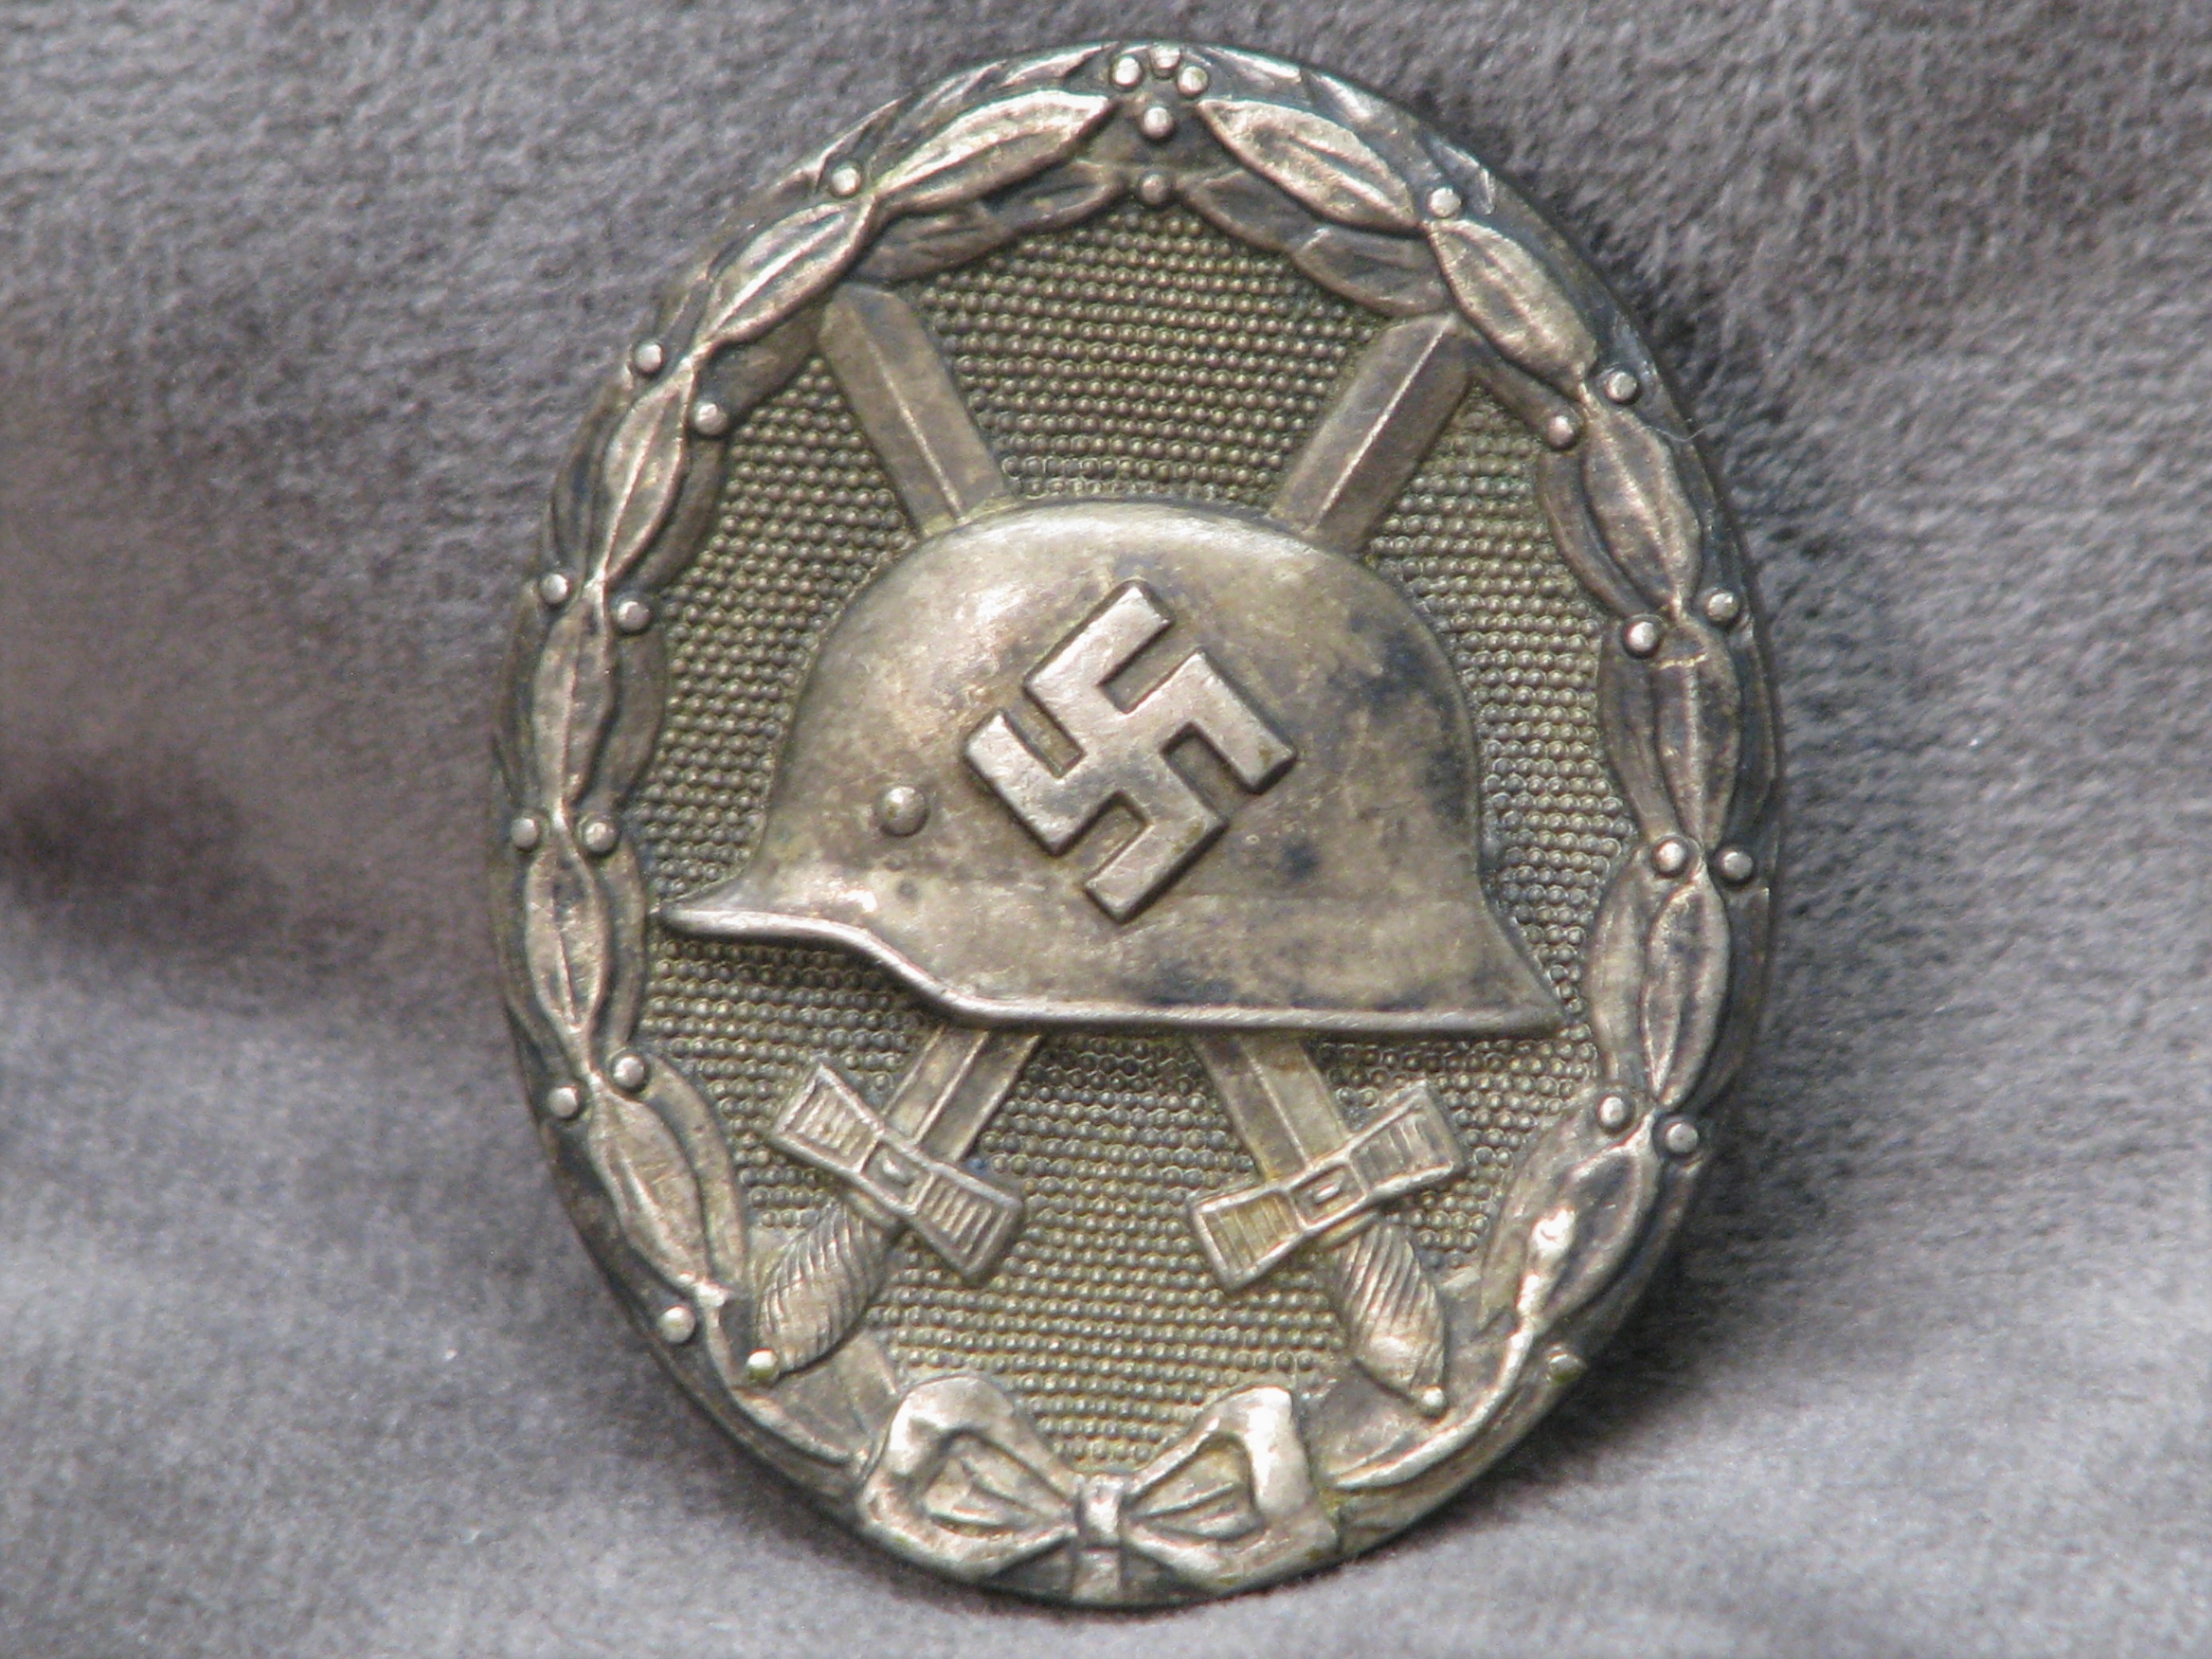 WWII German Silver Wound Badge Heavy Solid Back Wide Pin Marked 30 Hauptmnzant Wien 18-155